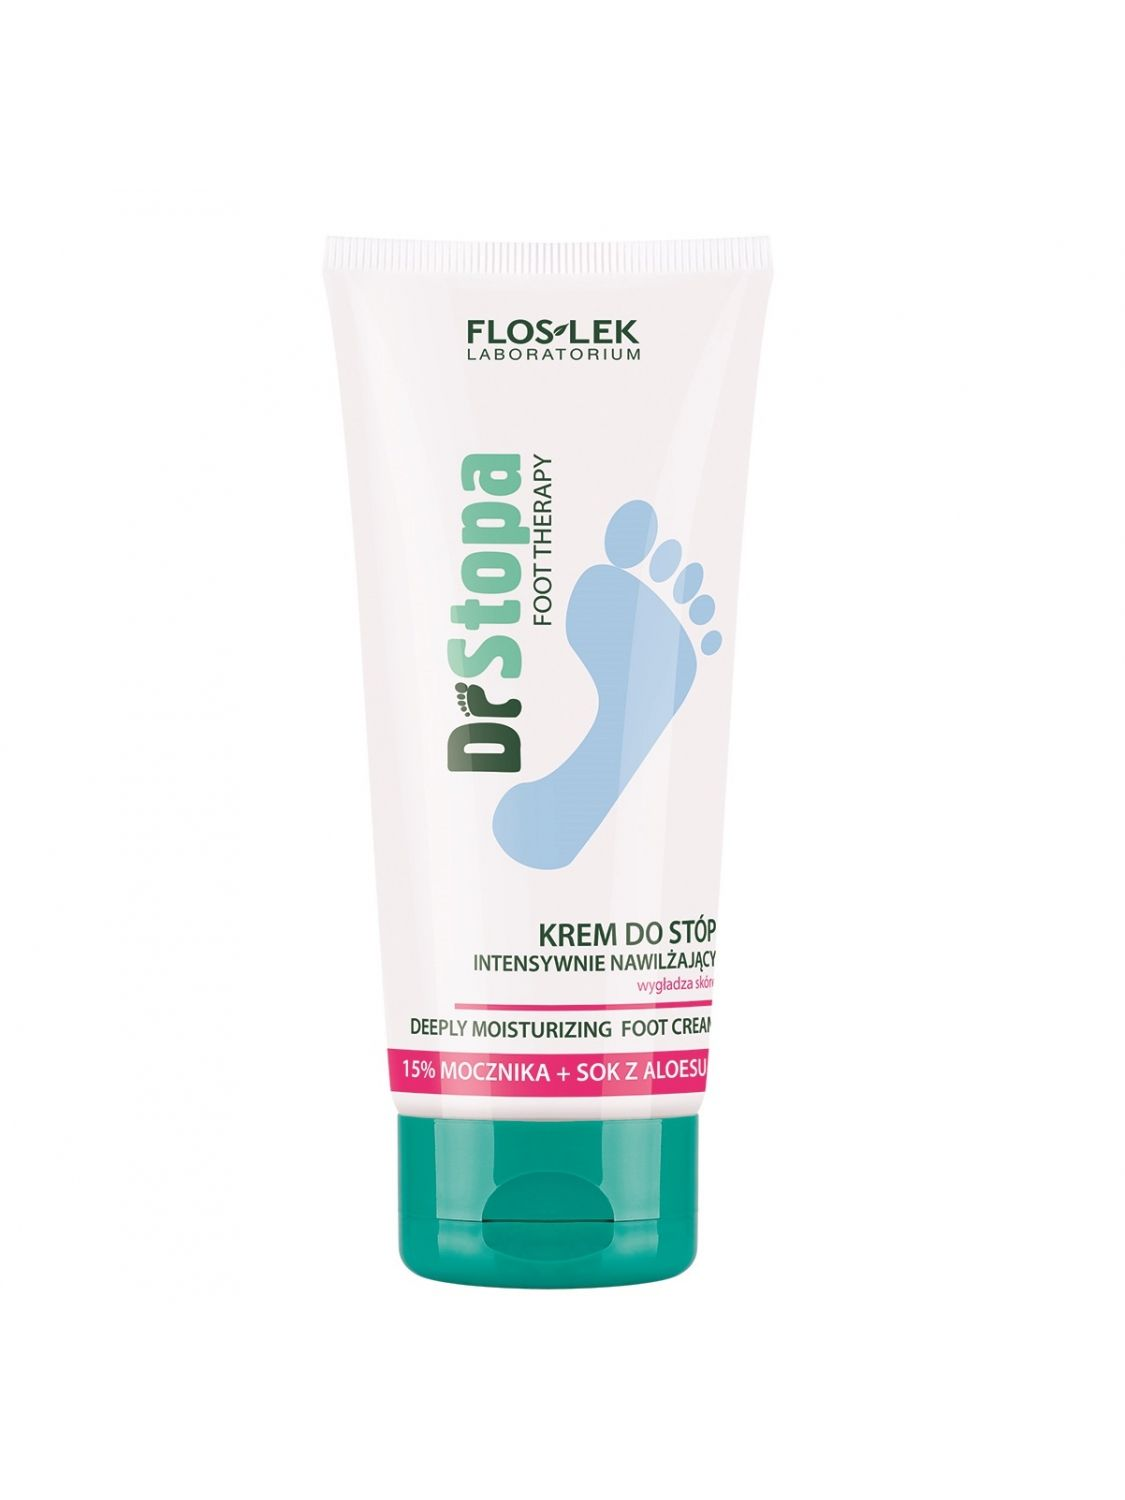 DR STOPA FOOT THERAPY Deeply moisturizing foot cream - 100 ml - Floslek